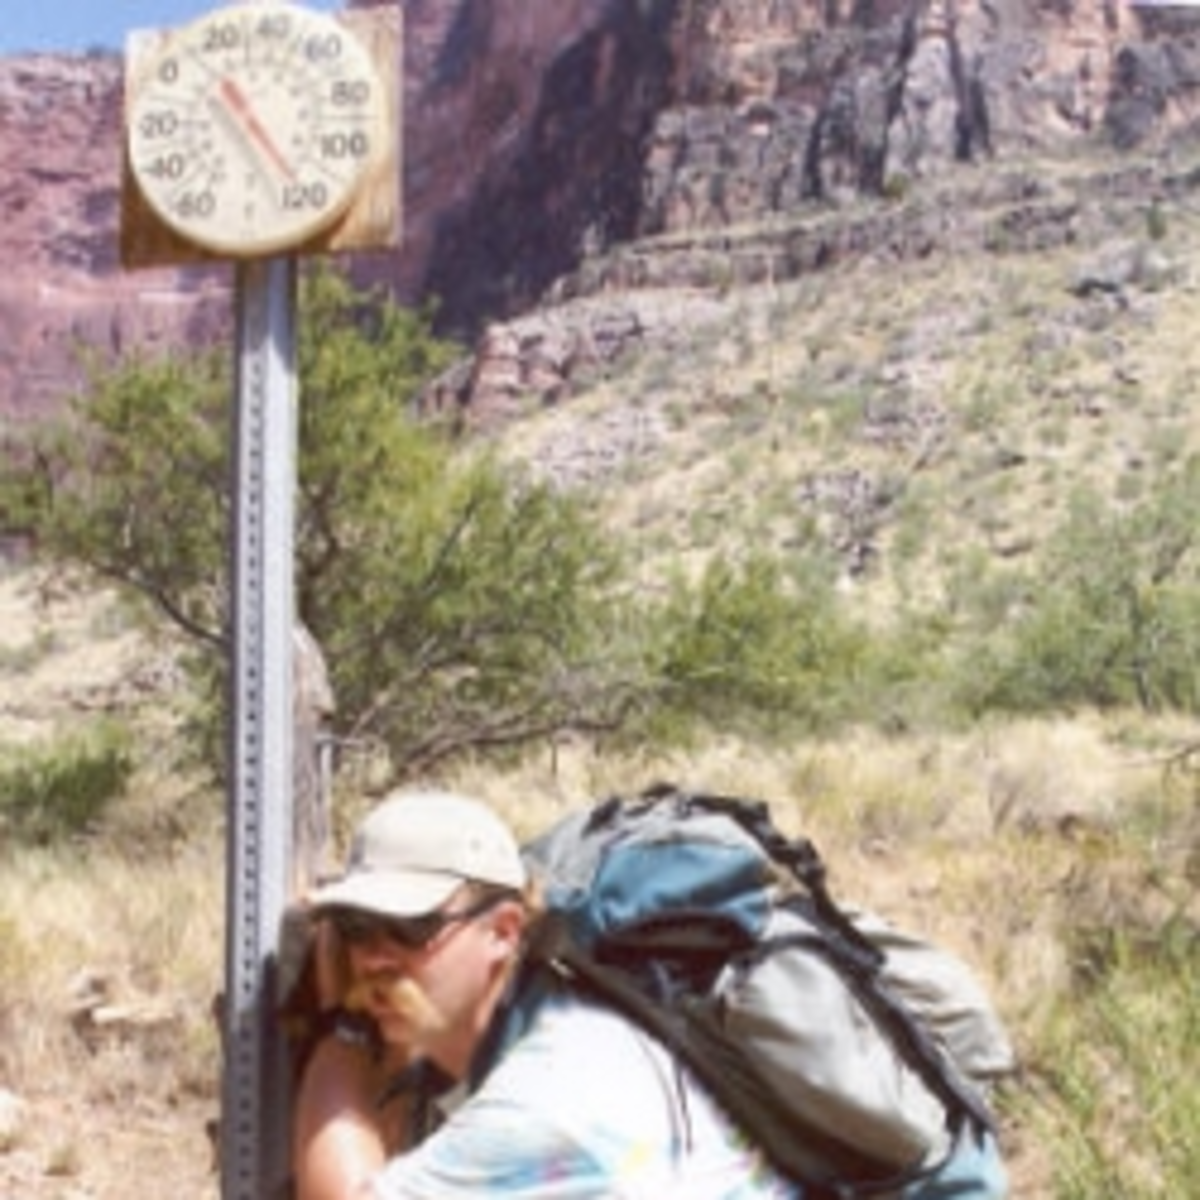 Summer Hiking in Grand Canyon: Stay Safe, Have Fun